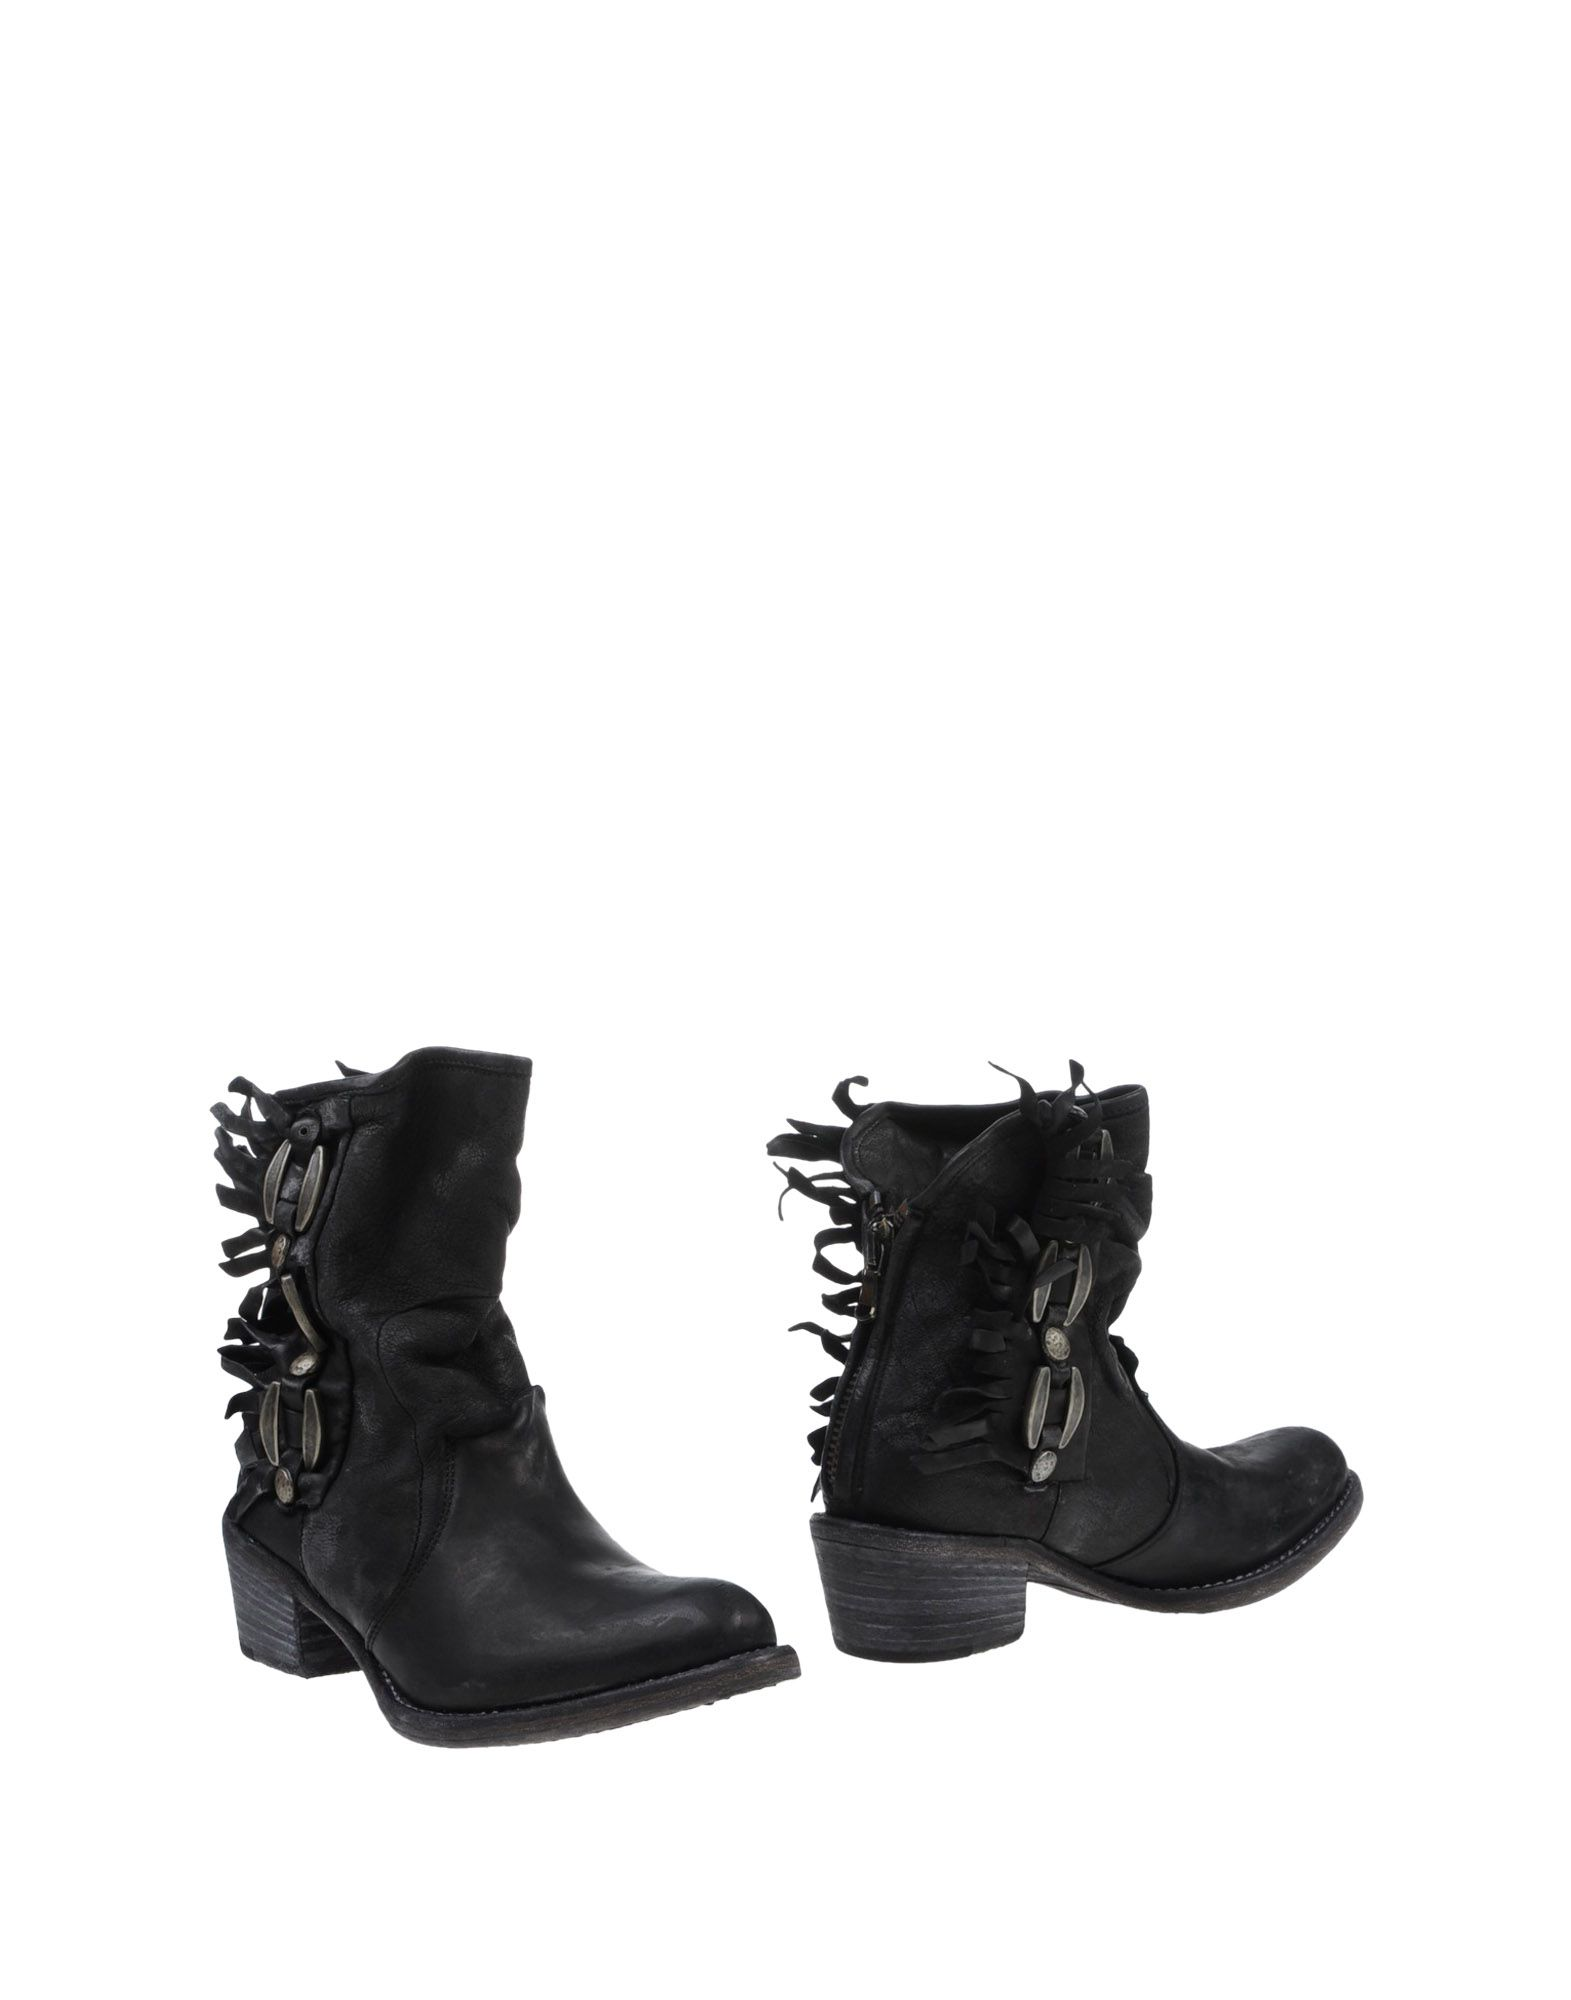 Bottine Nylo Femme - Bottines Nylo sur